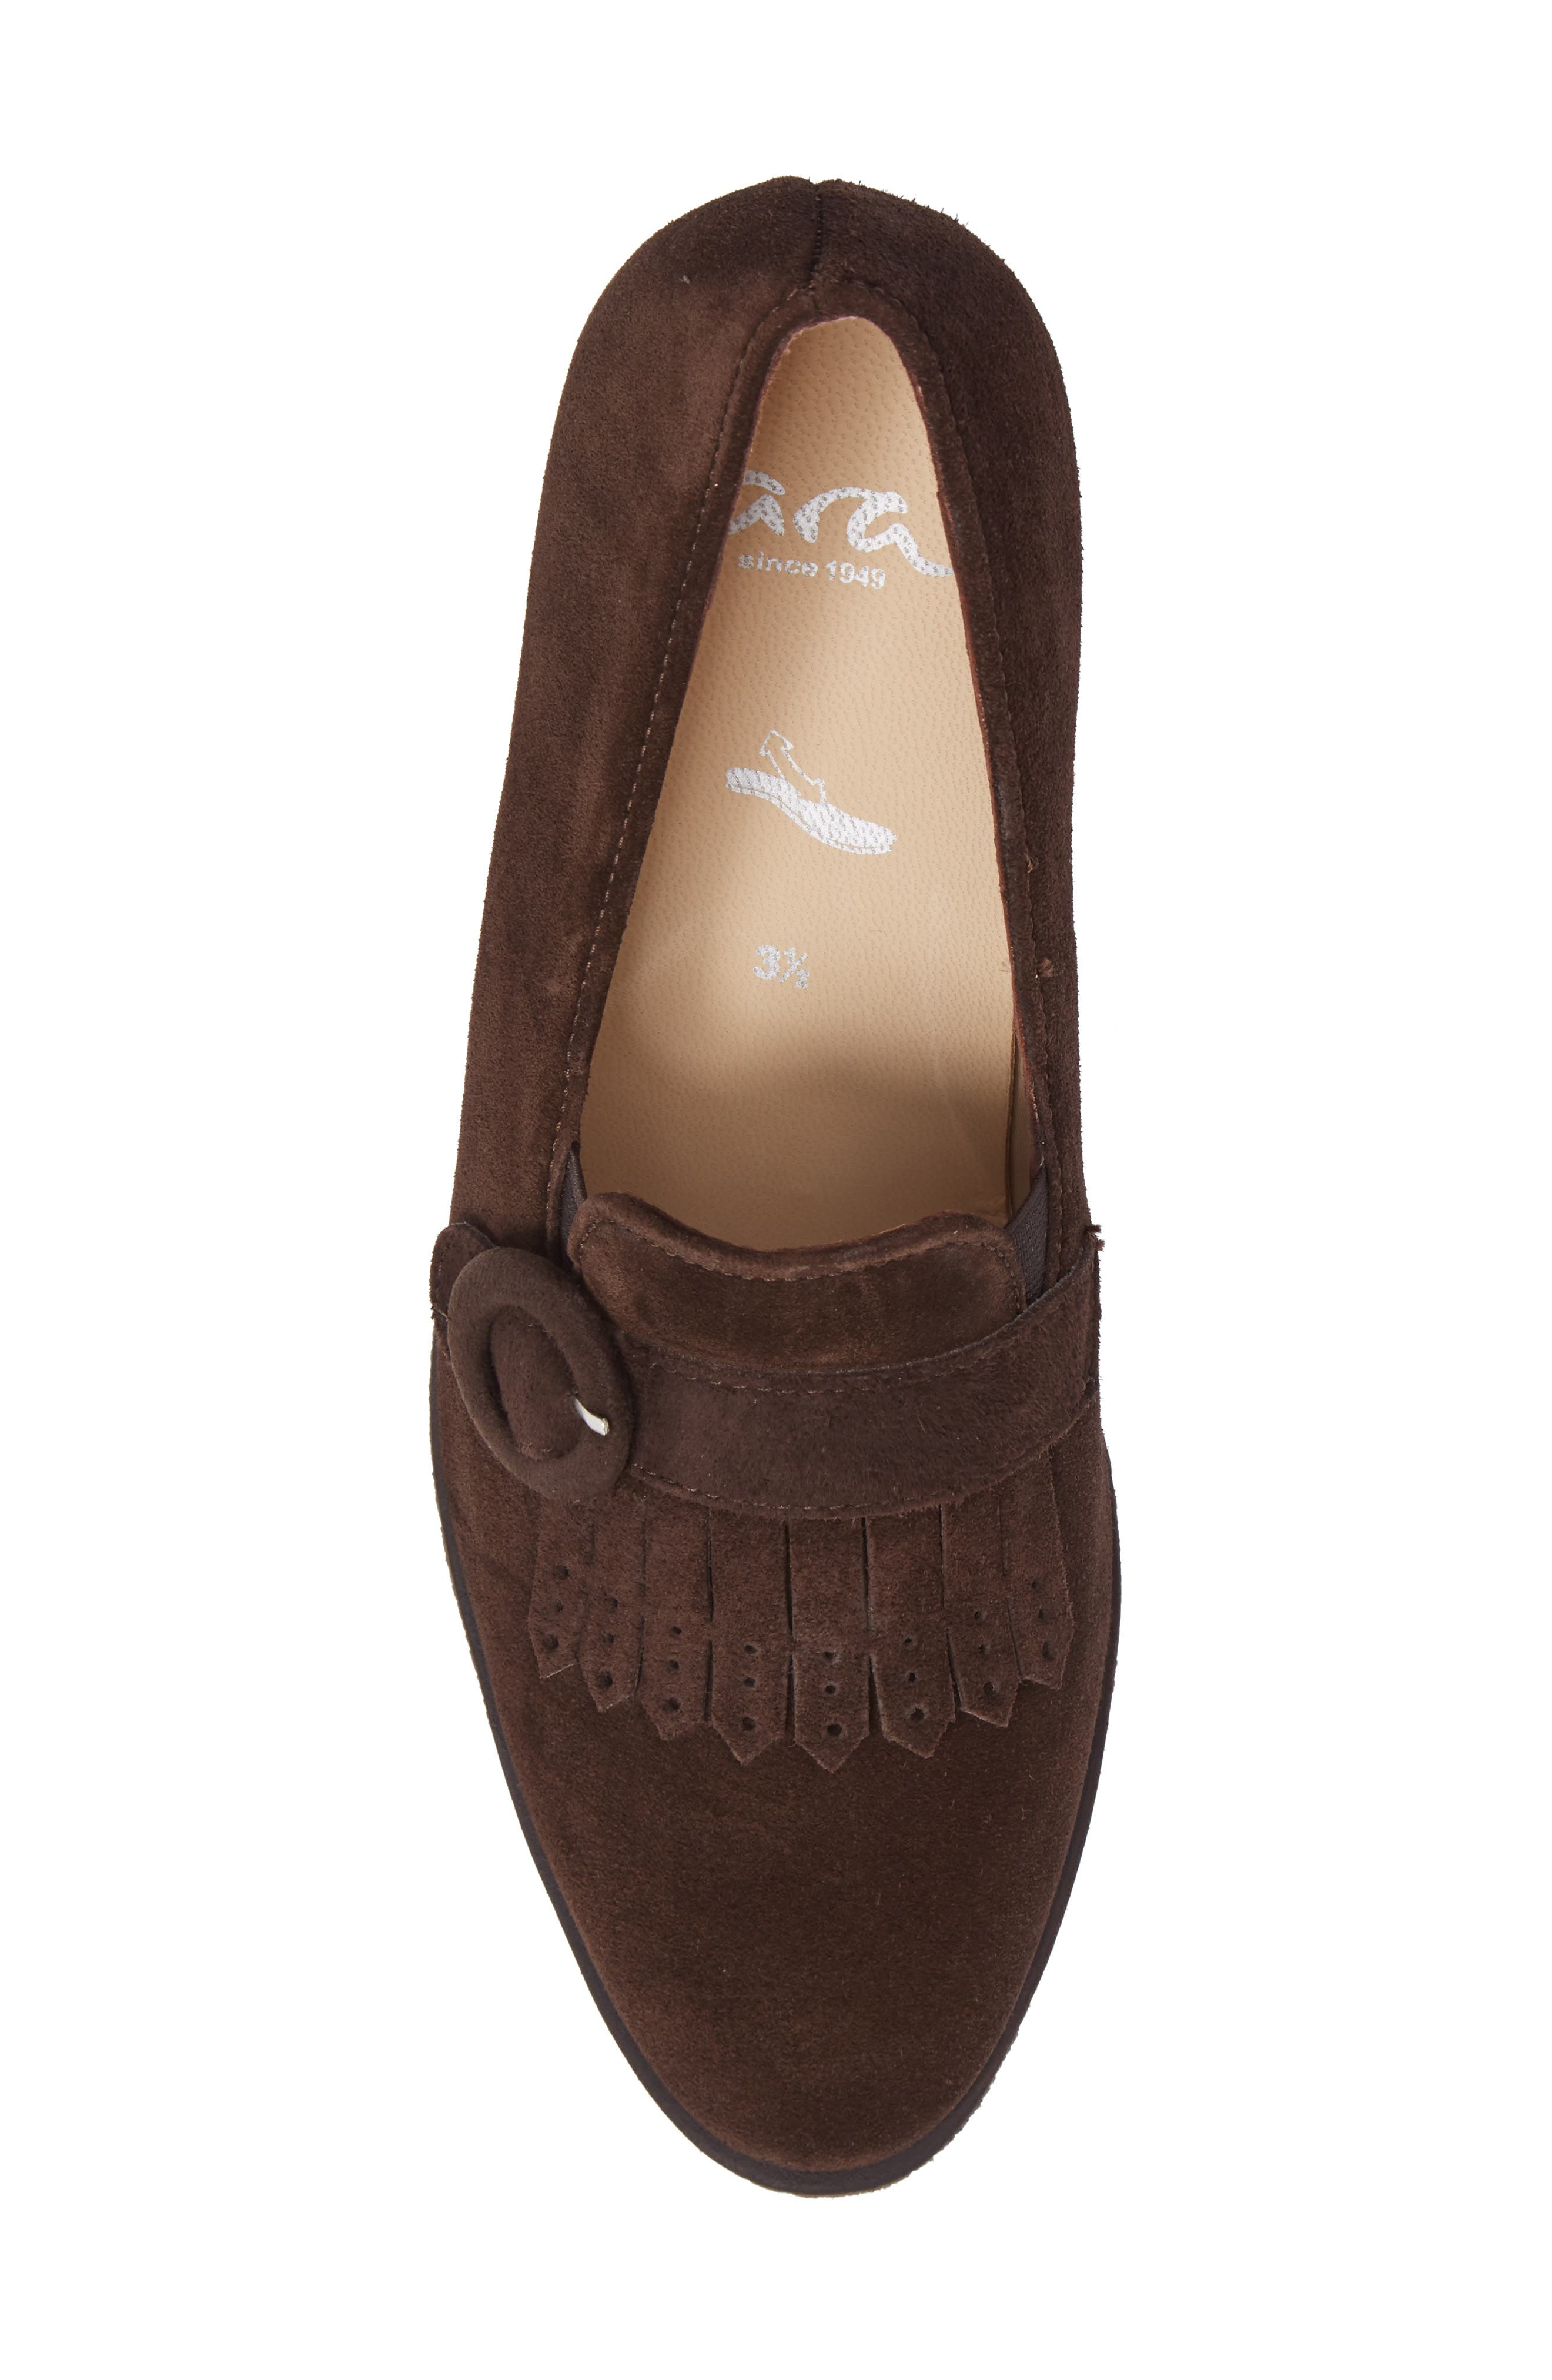 Becky Loafer Pump,                             Alternate thumbnail 5, color,                             Brown Suede